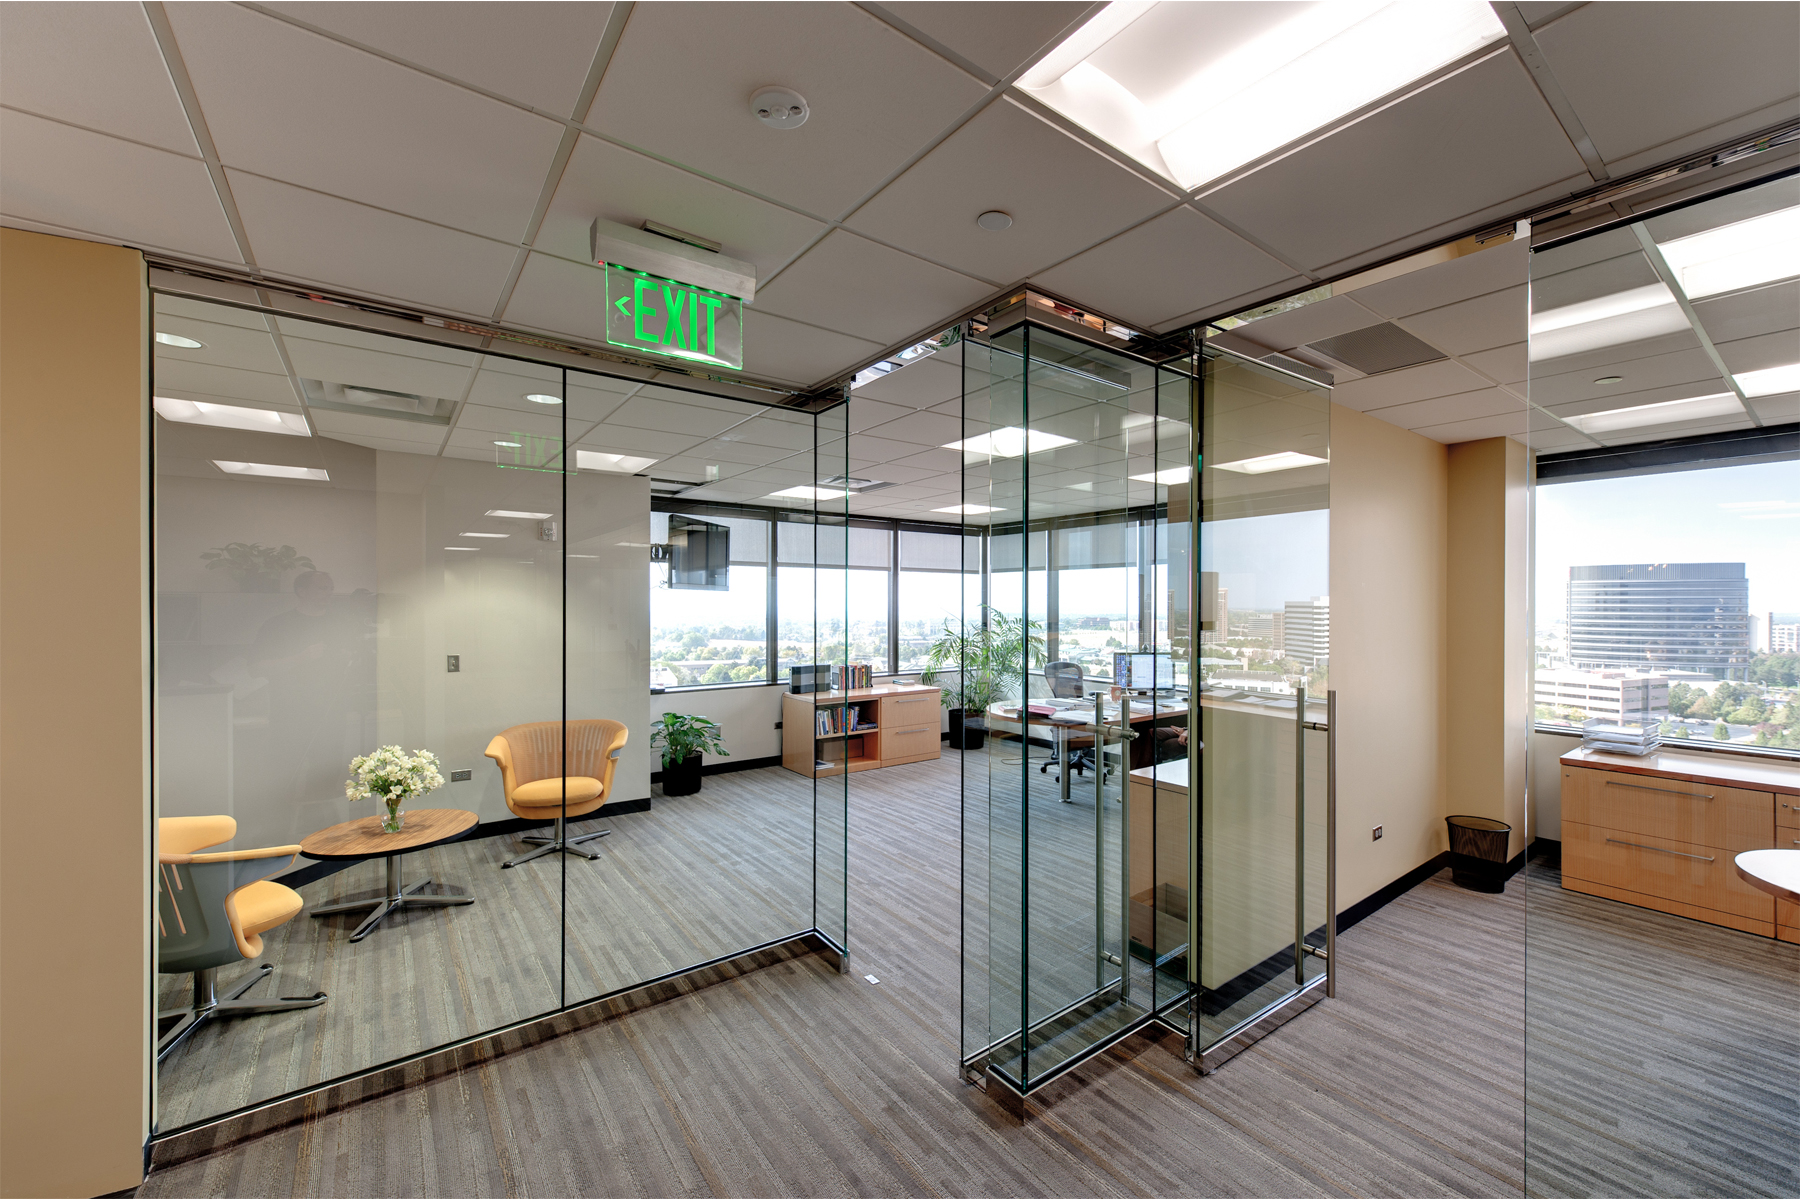 Denver Office Remodel, Colorado- Jordy Construction 2